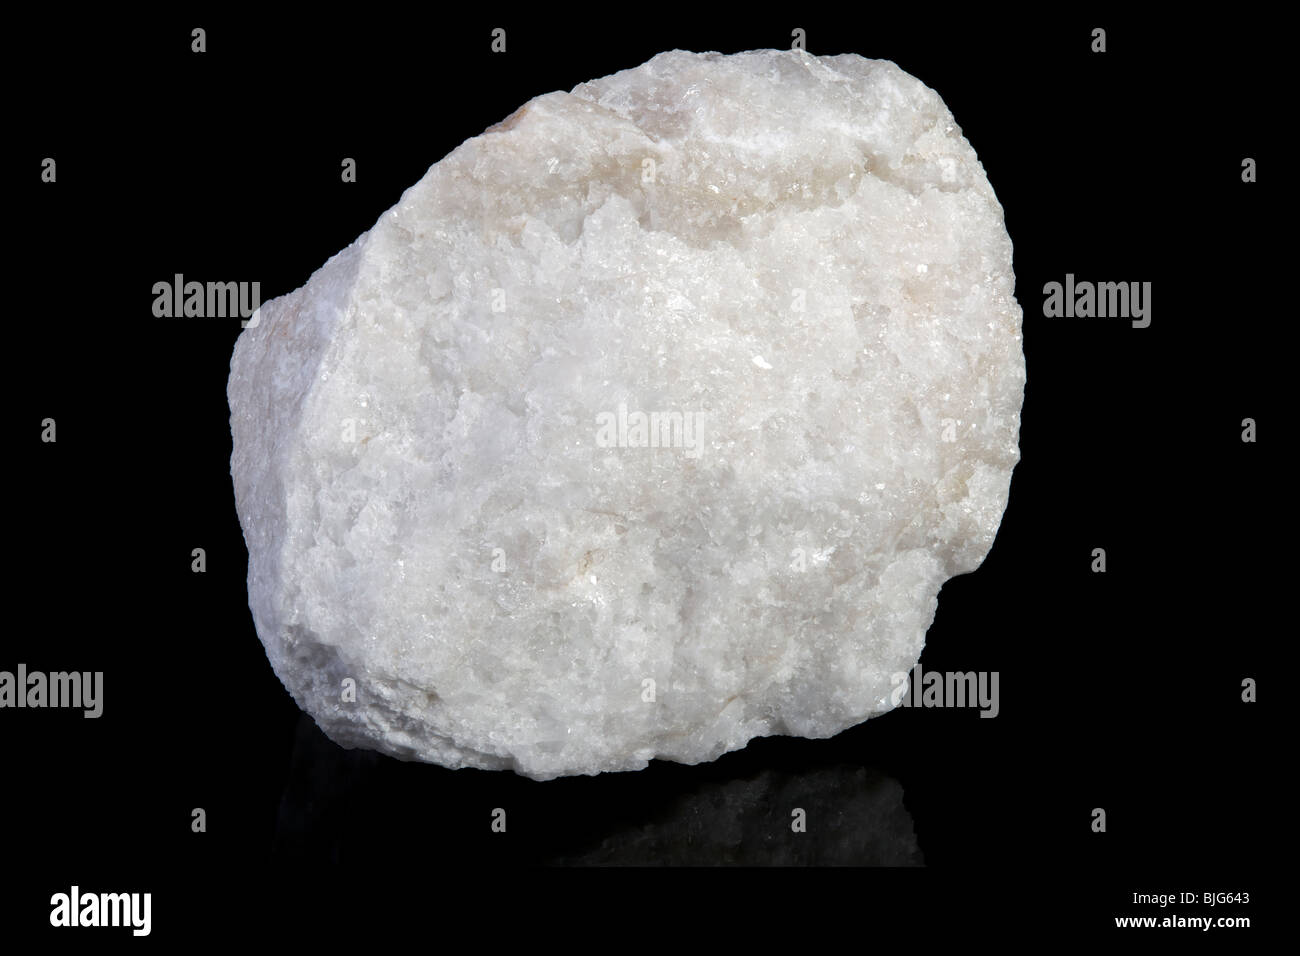 Barite AKA: Baryte ia a mineral consisting of barium sulfate - Stock Image